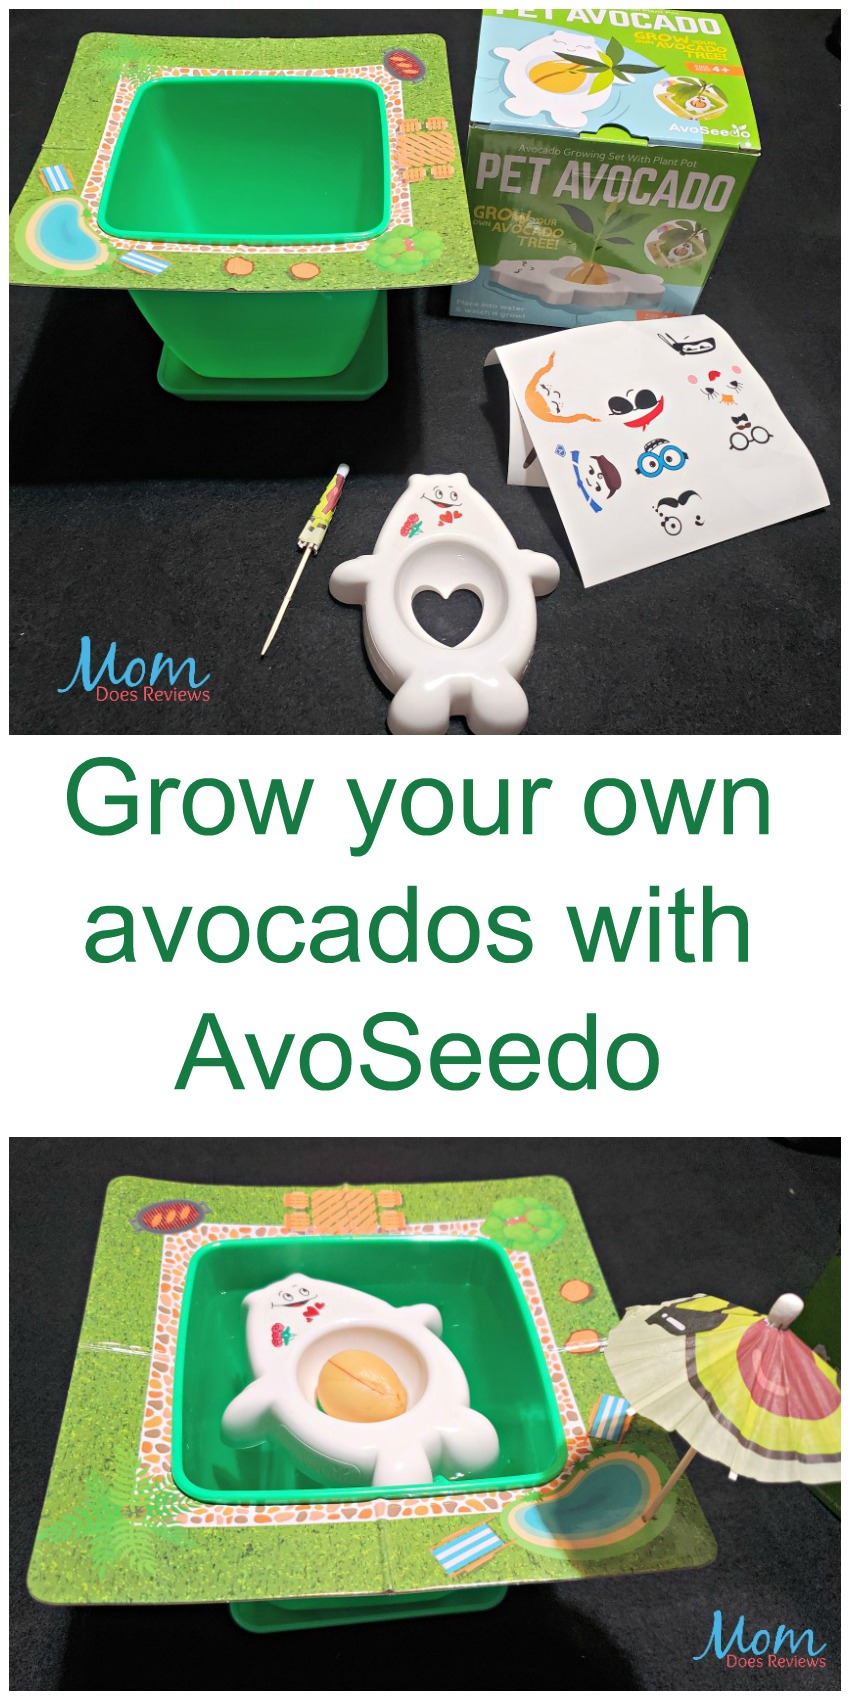 Grow your own avocados with AvoSeedo